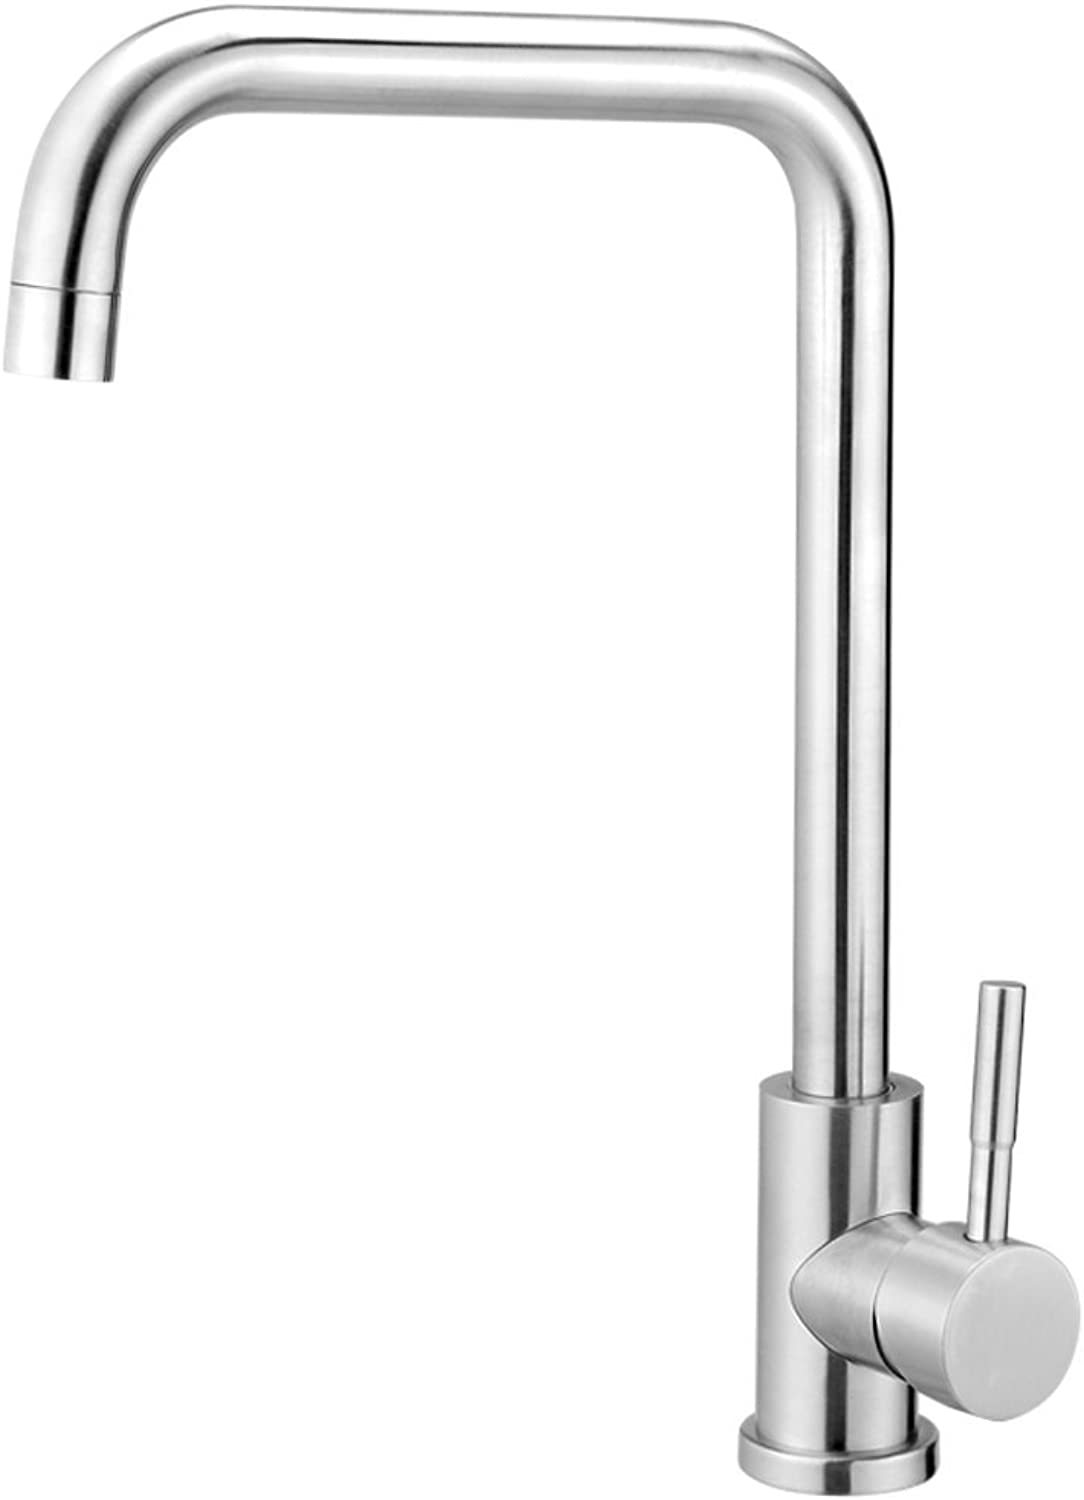 304 stainless steel faucet Kitchen sink hot and cold water faucet Lead-free sink faucet Brushed redary faucet (color   A)